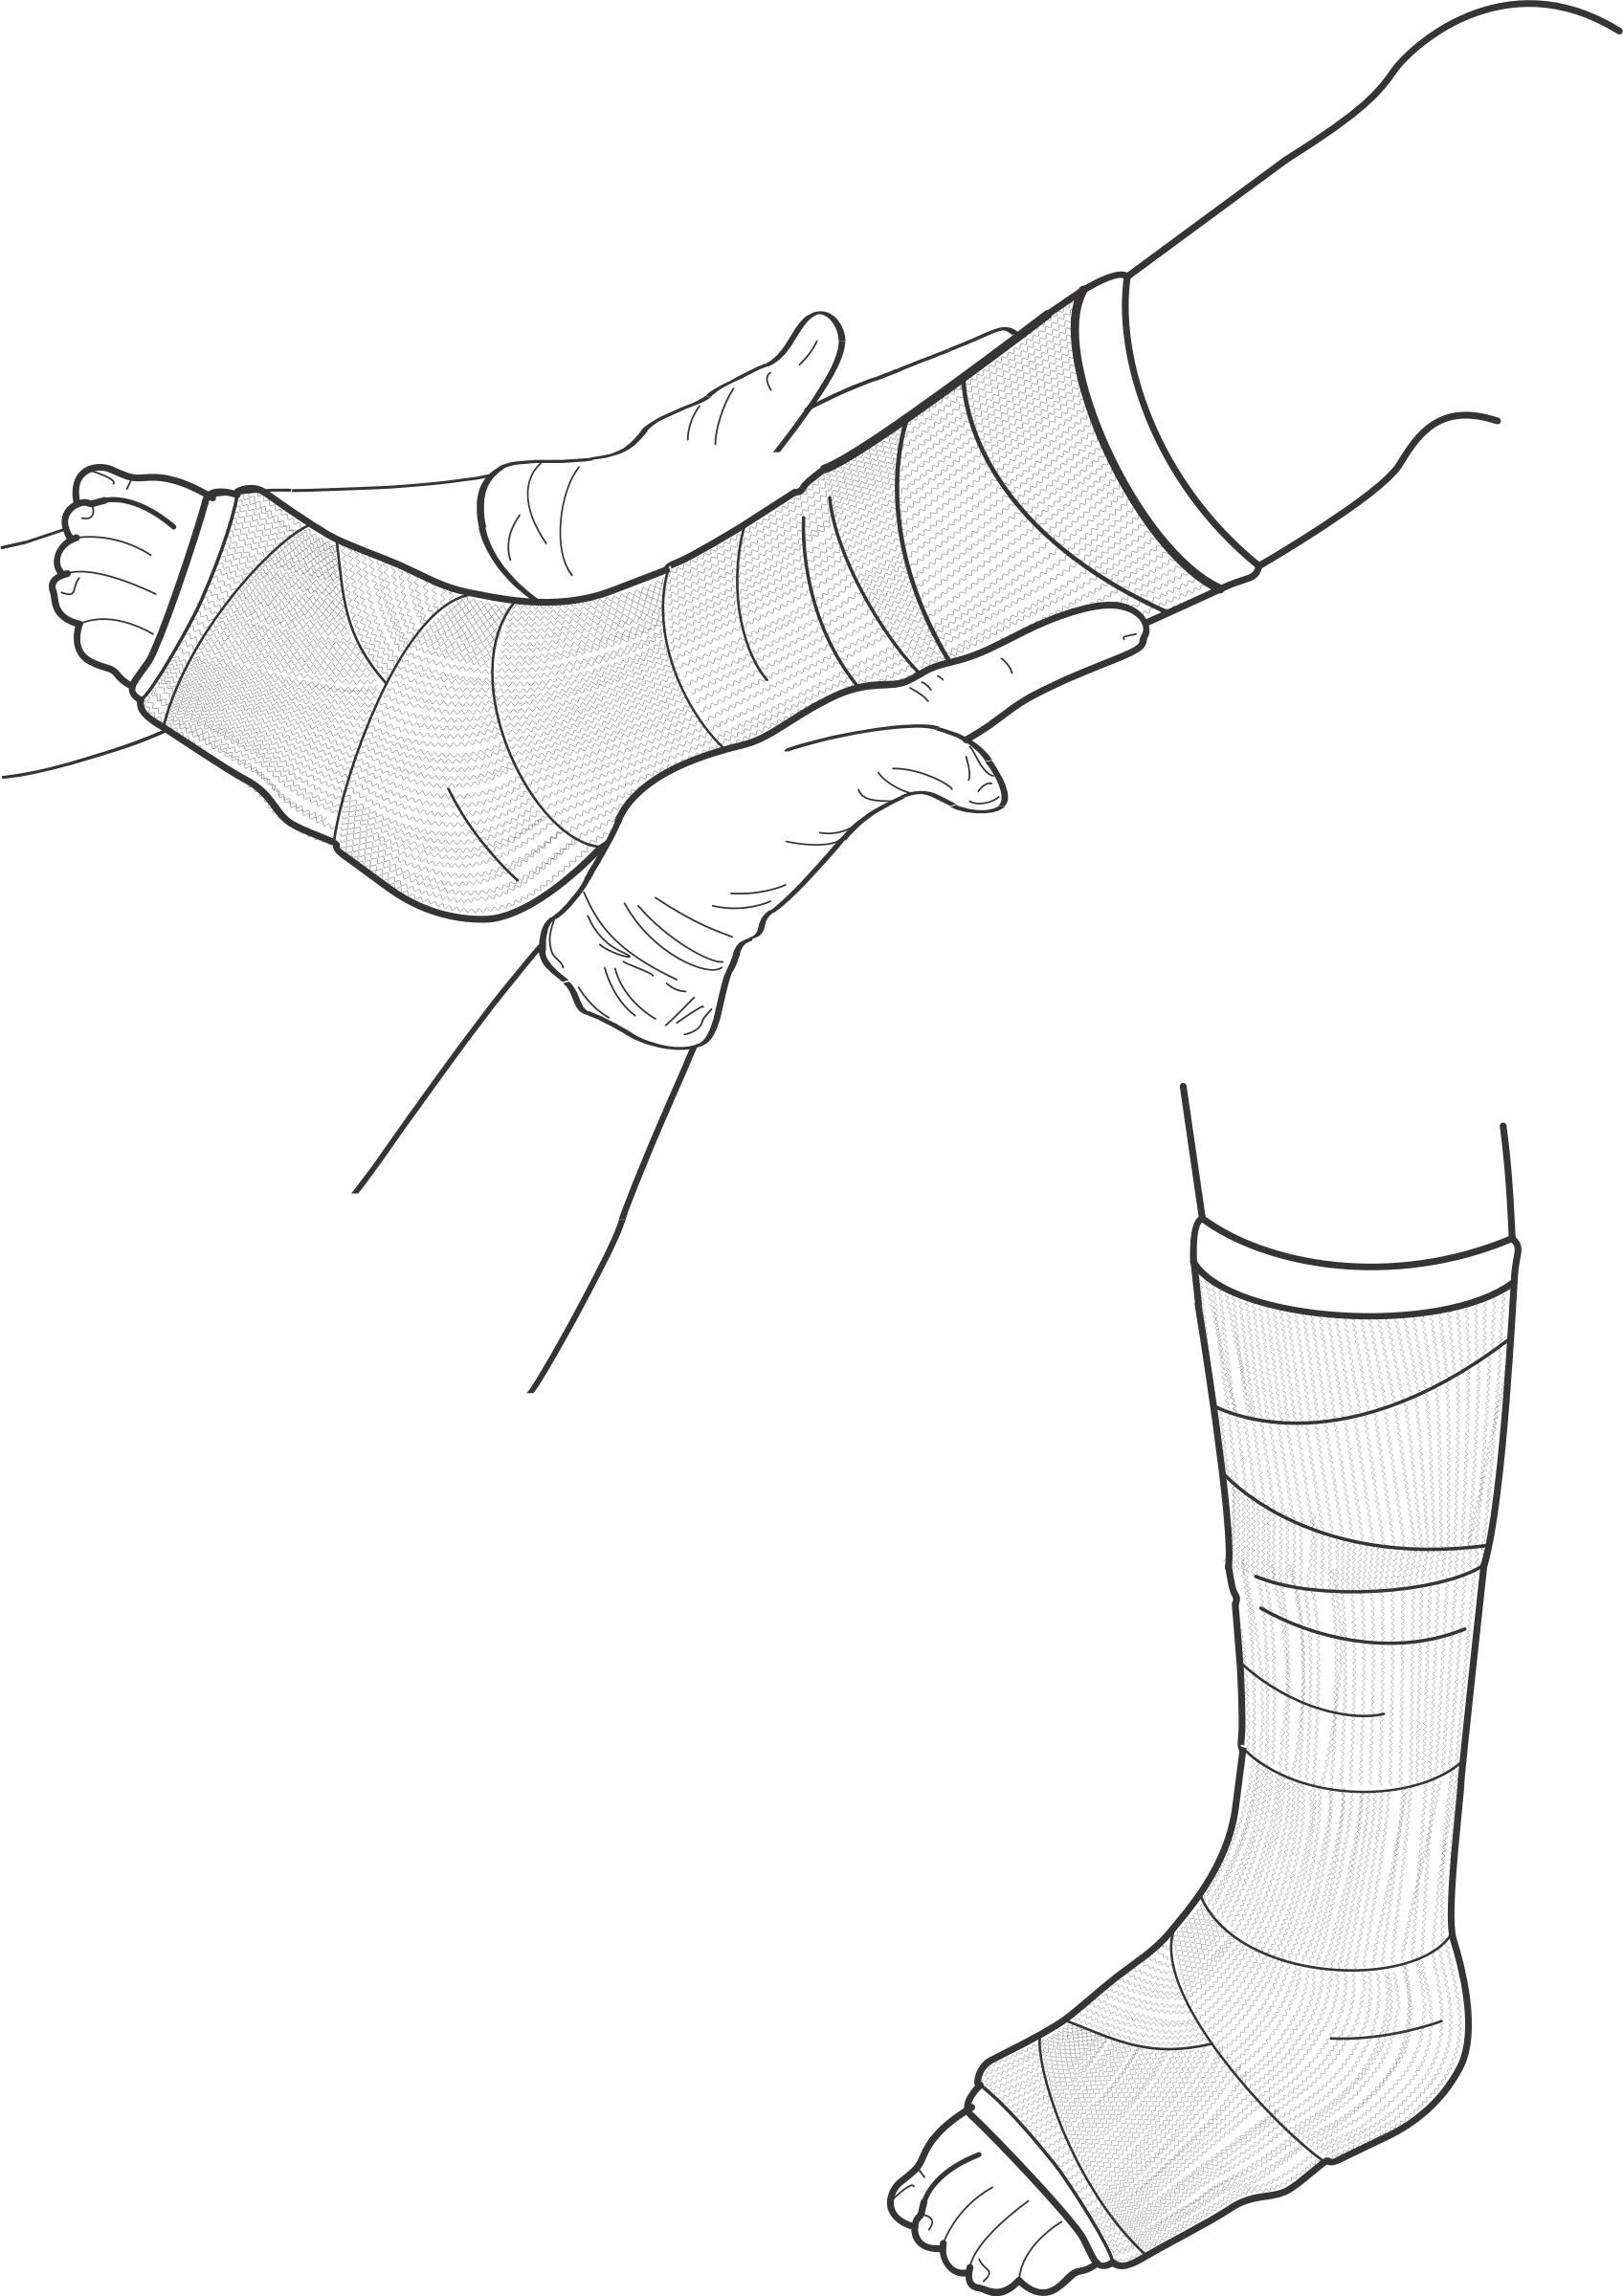 Injury clipart plaster cast. Leg drawing at getdrawings